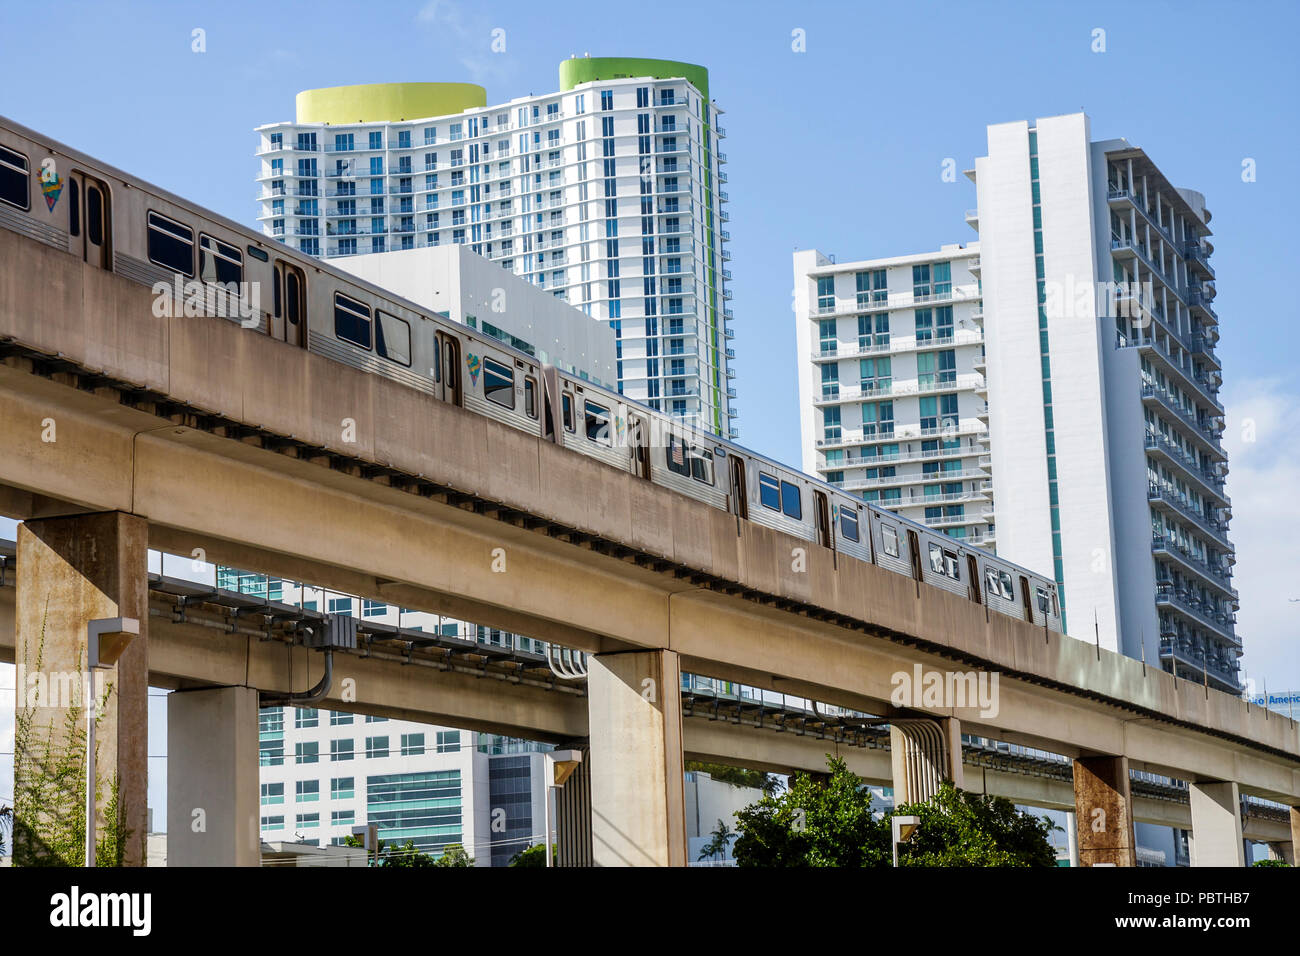 Miami Floride quartier Brickell Metrorail bâtiments des tours d'habitation de la famille multi-condos appartements architecture moderne du vrai Photo Stock